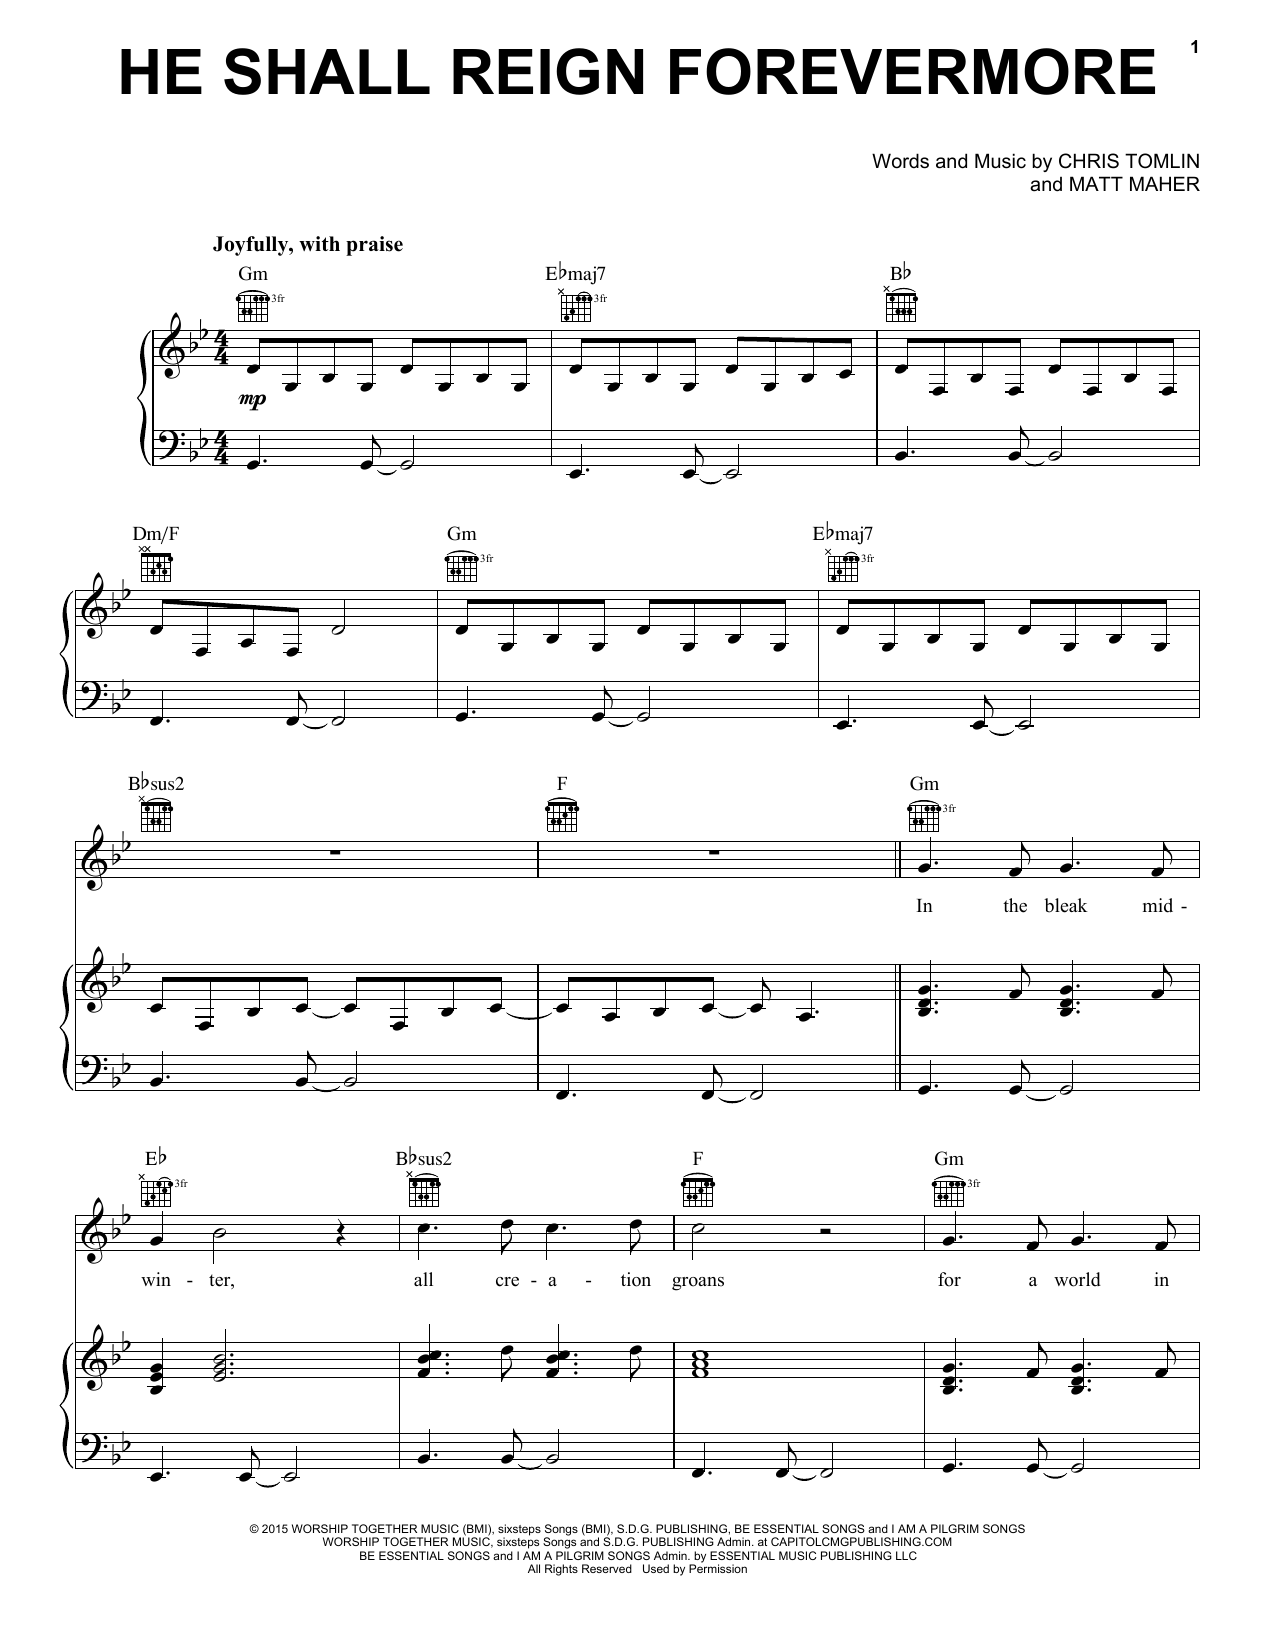 He Shall Reign Forevermore : Sheet Music Direct